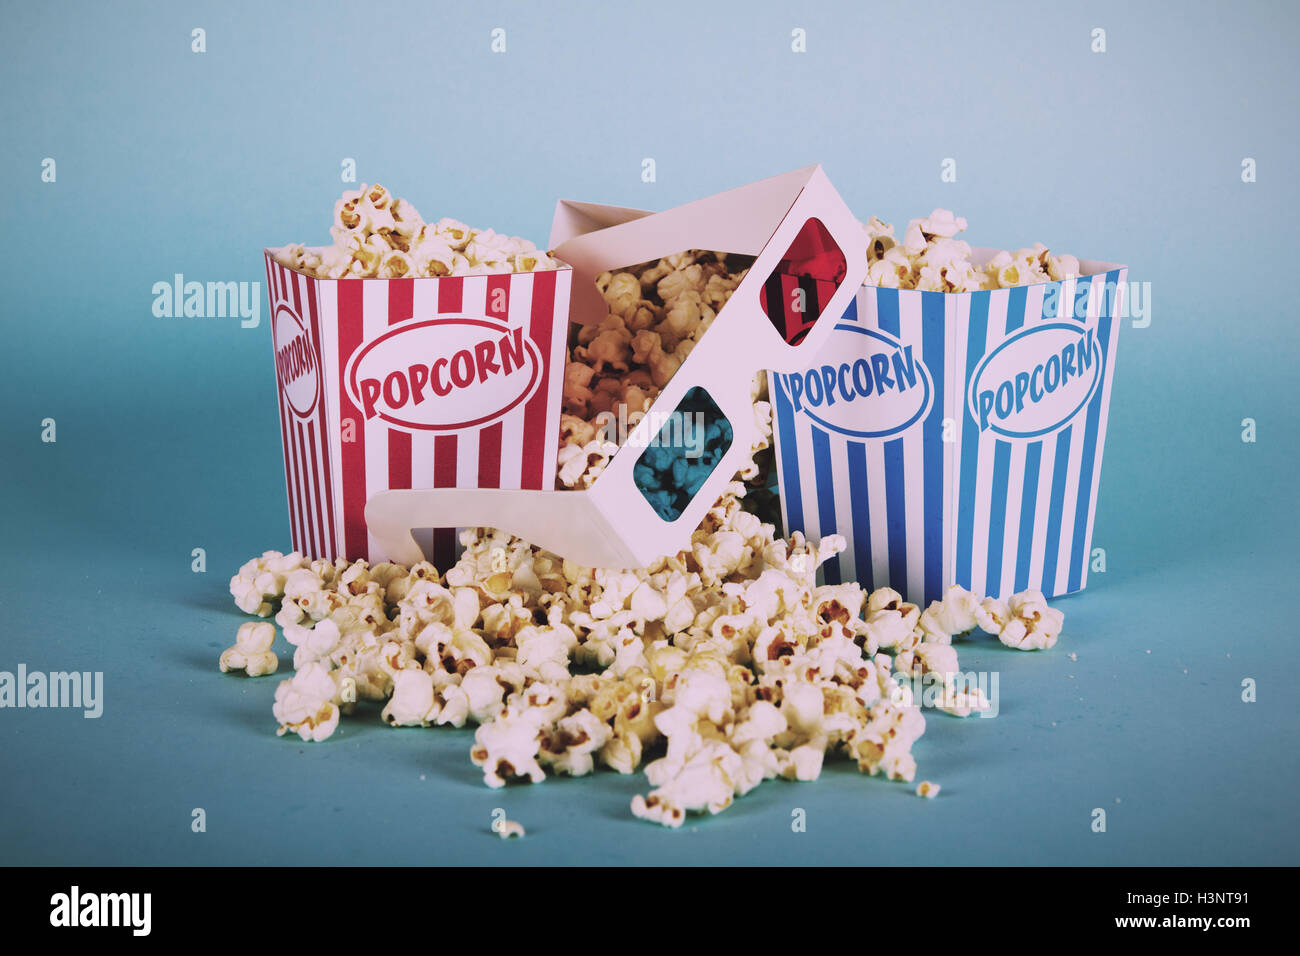 Bucket Of Popcorn Against A Blue Background Vintage Retro Filter Stock Photo Alamy